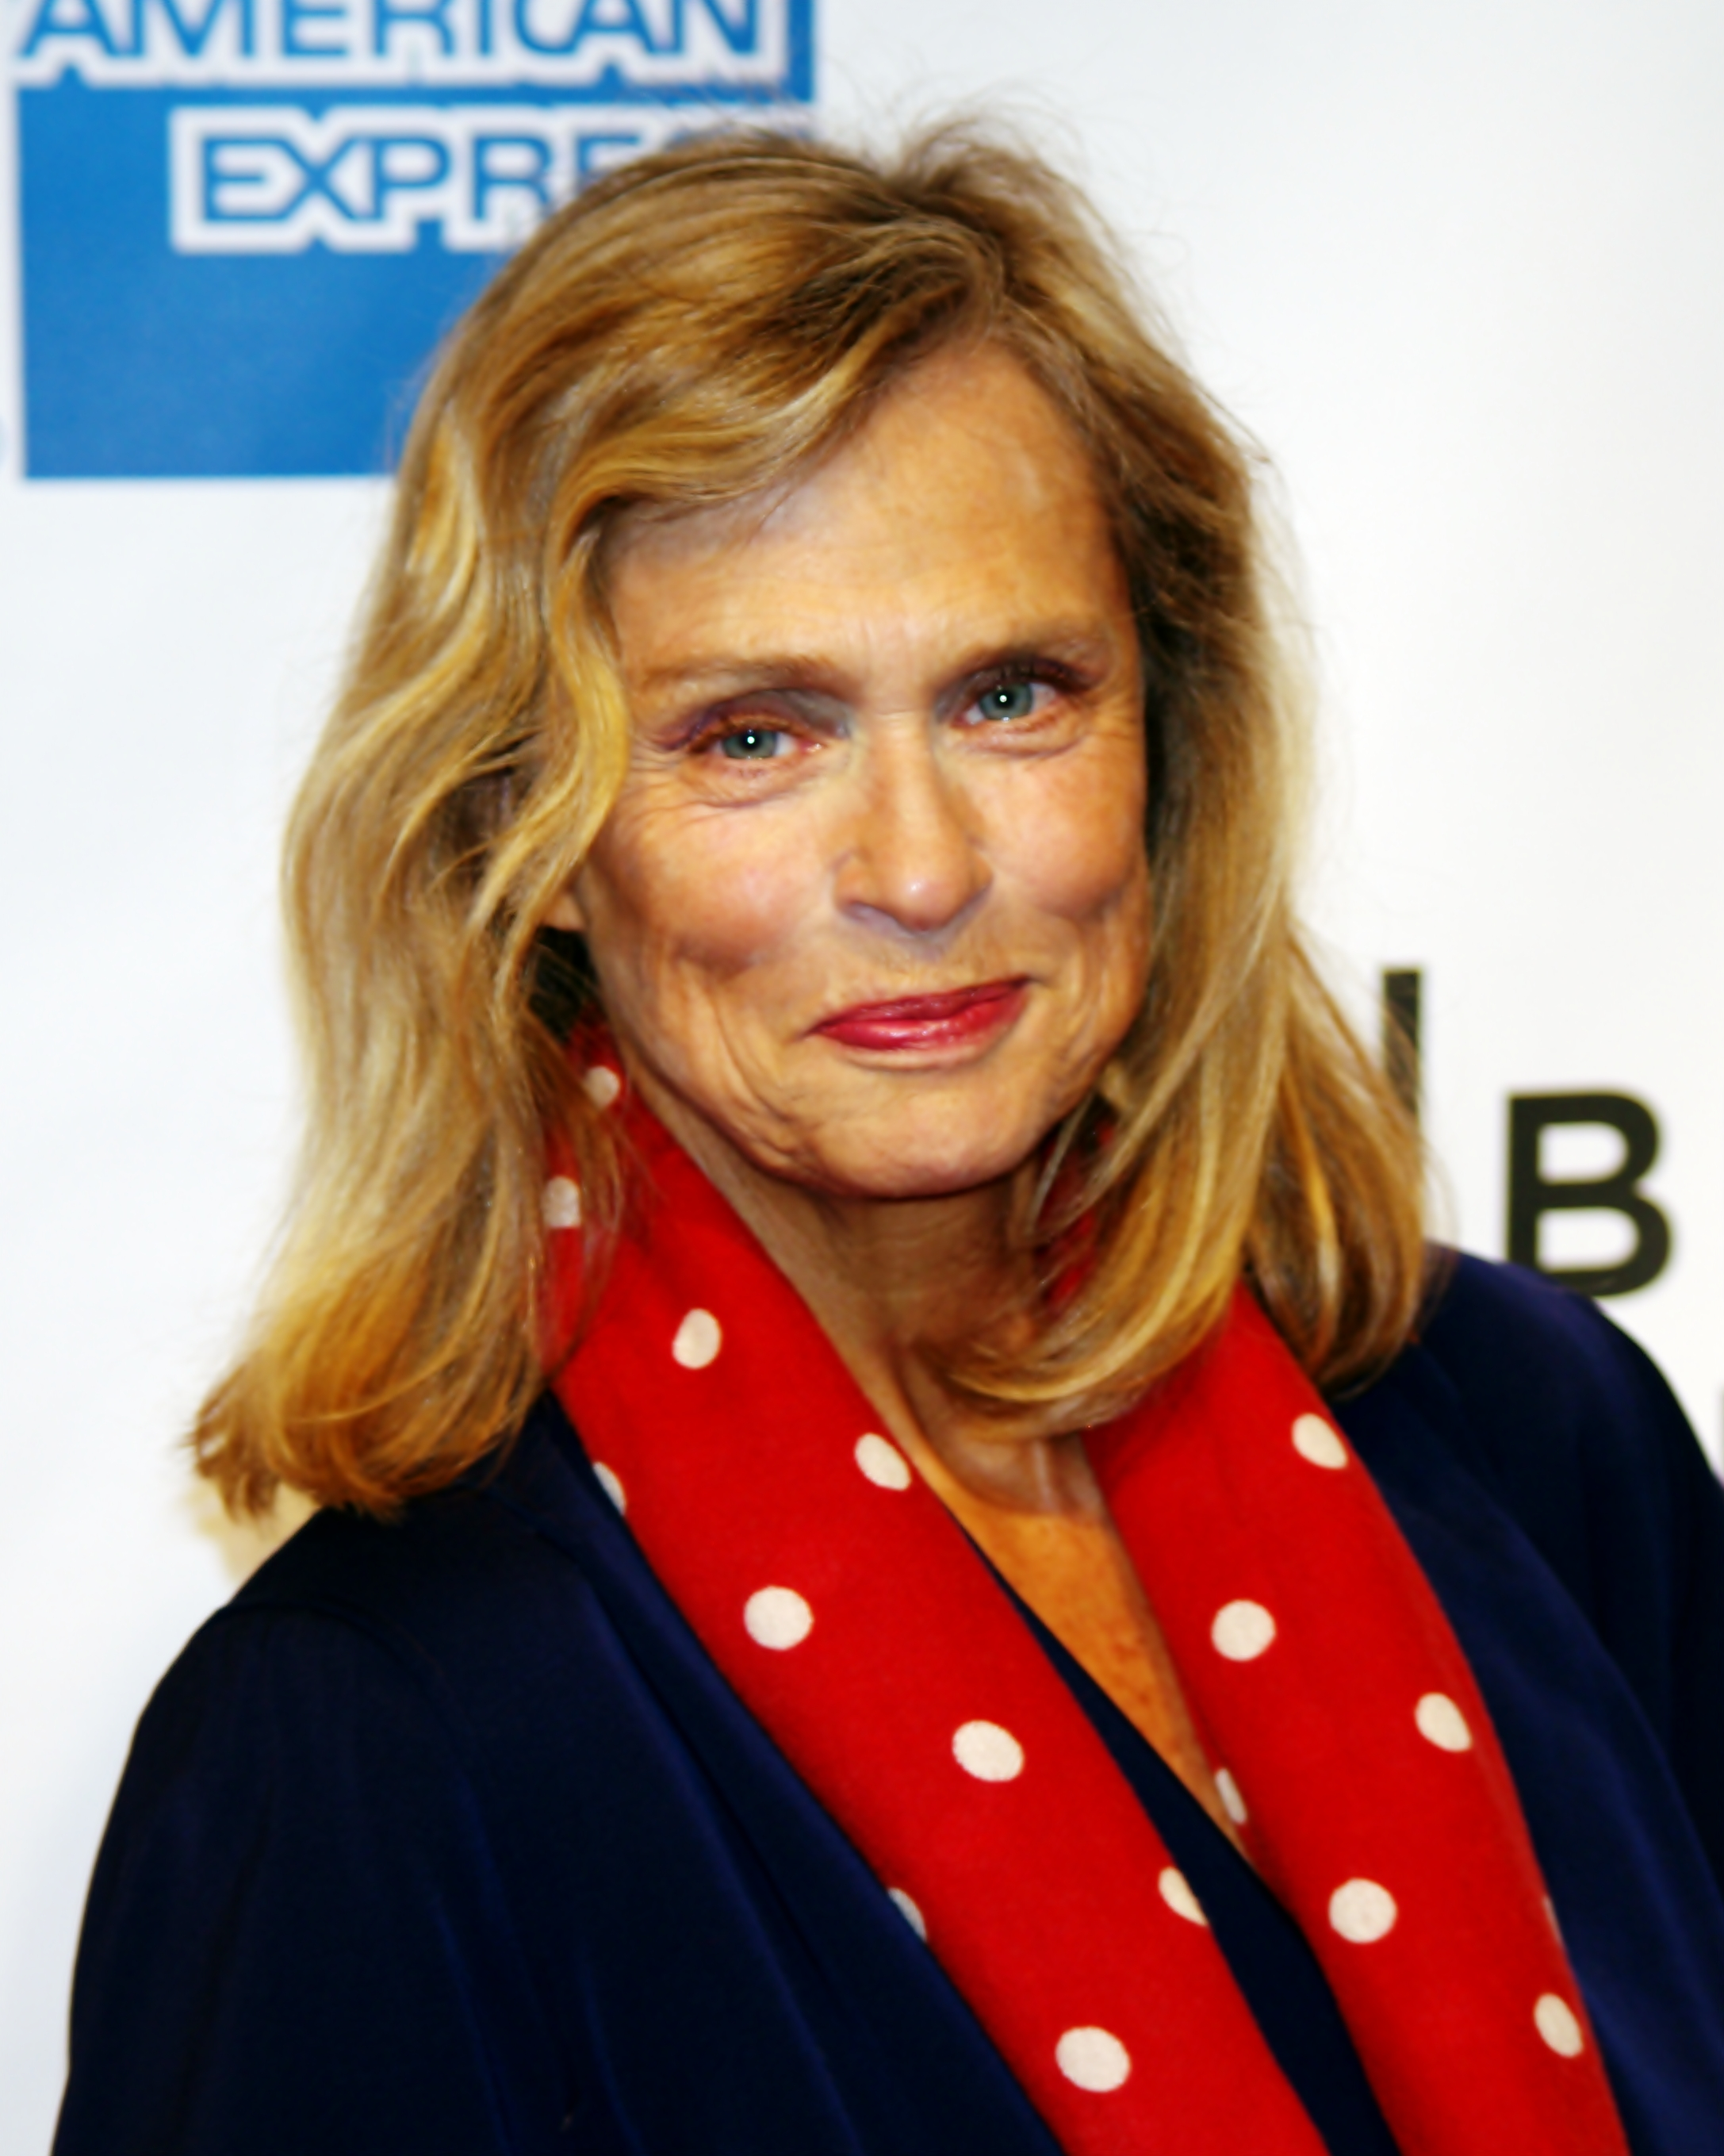 The 74-year old daughter of father (?) and mother(?) Lauren Hutton in 2018 photo. Lauren Hutton earned a  million dollar salary - leaving the net worth at 20 million in 2018